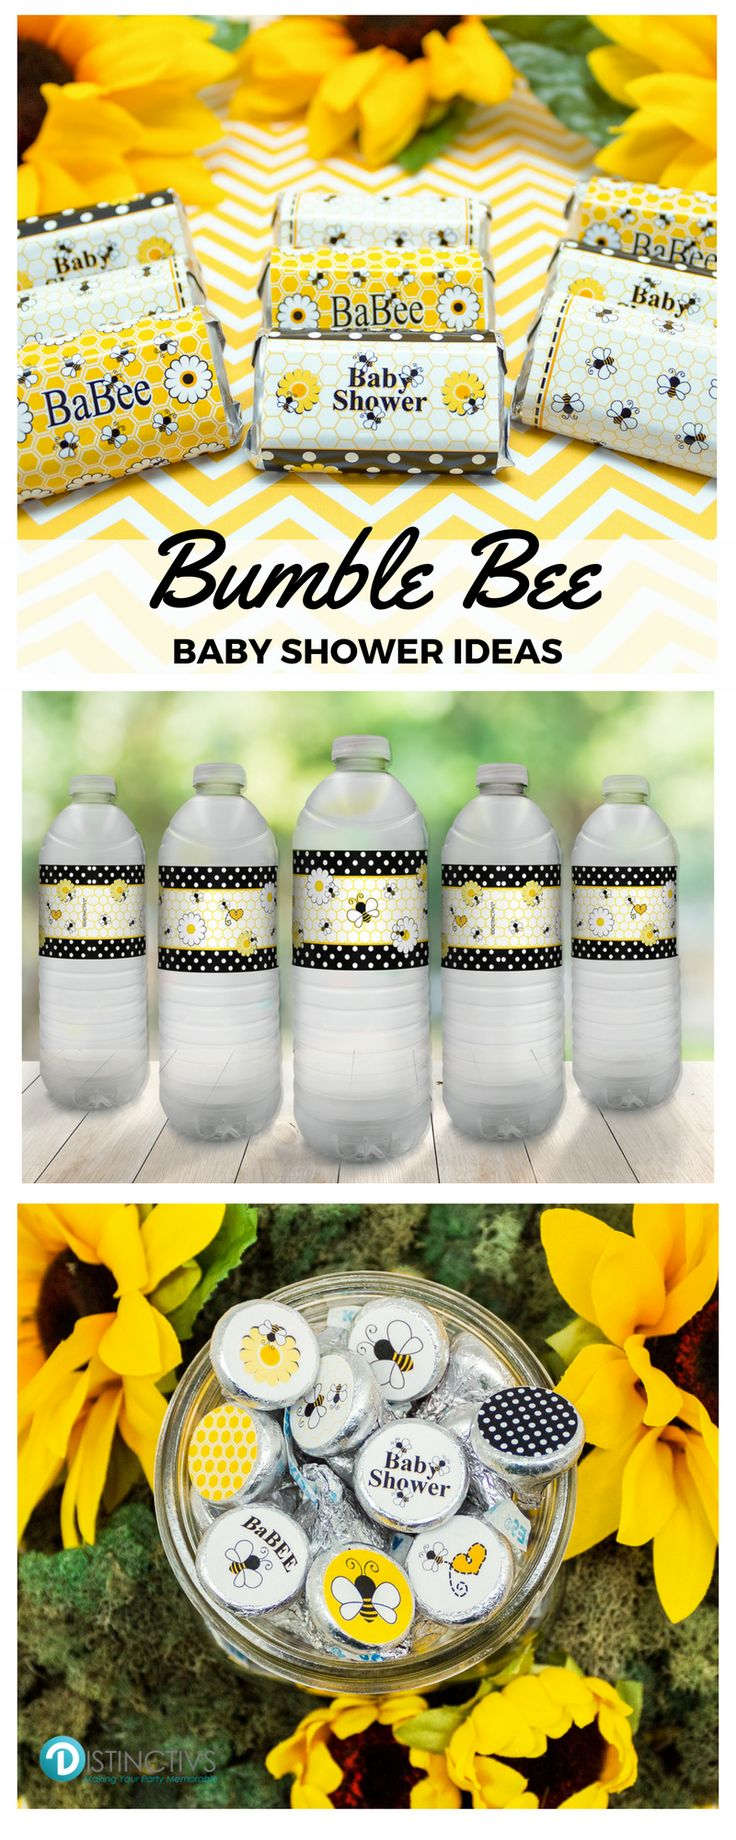 Shop Our Bumble Bee Baby Shower Supplies For Your Gender Neutral Baby Shower.  Bumble Bee Baby Shower Favor Stickers And Baby Shower Favor Candy Wrappers.